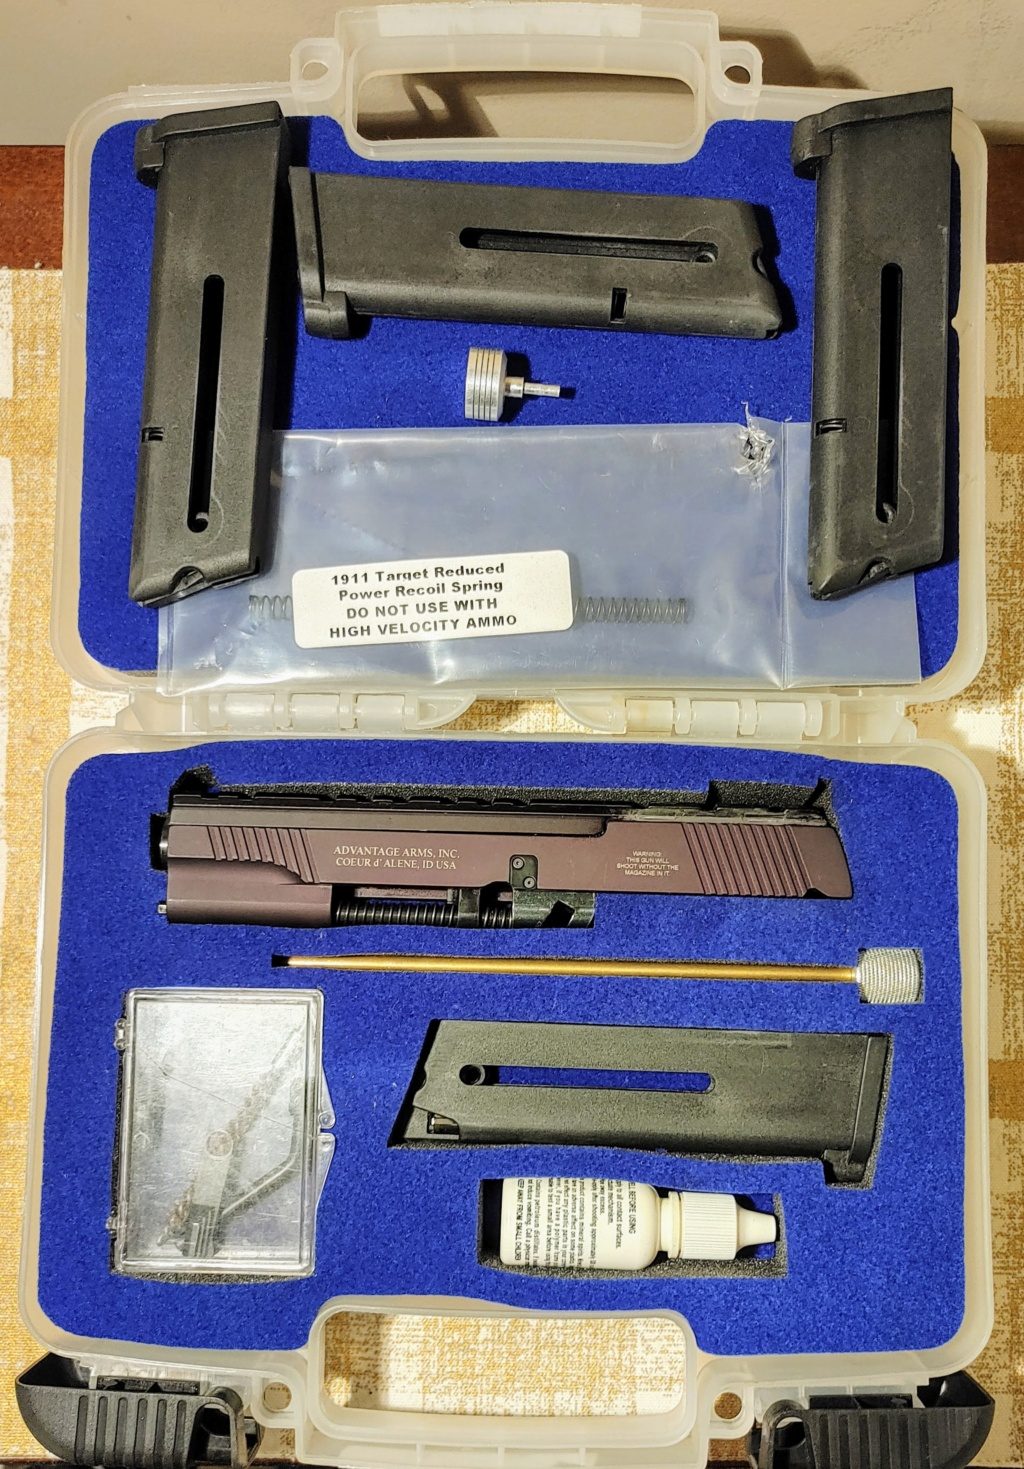 SPF: 1911 .45ACP Wadgun by George Carell + .22 Advantage Arms Conversion - Complete Bullseye Package  Advant10